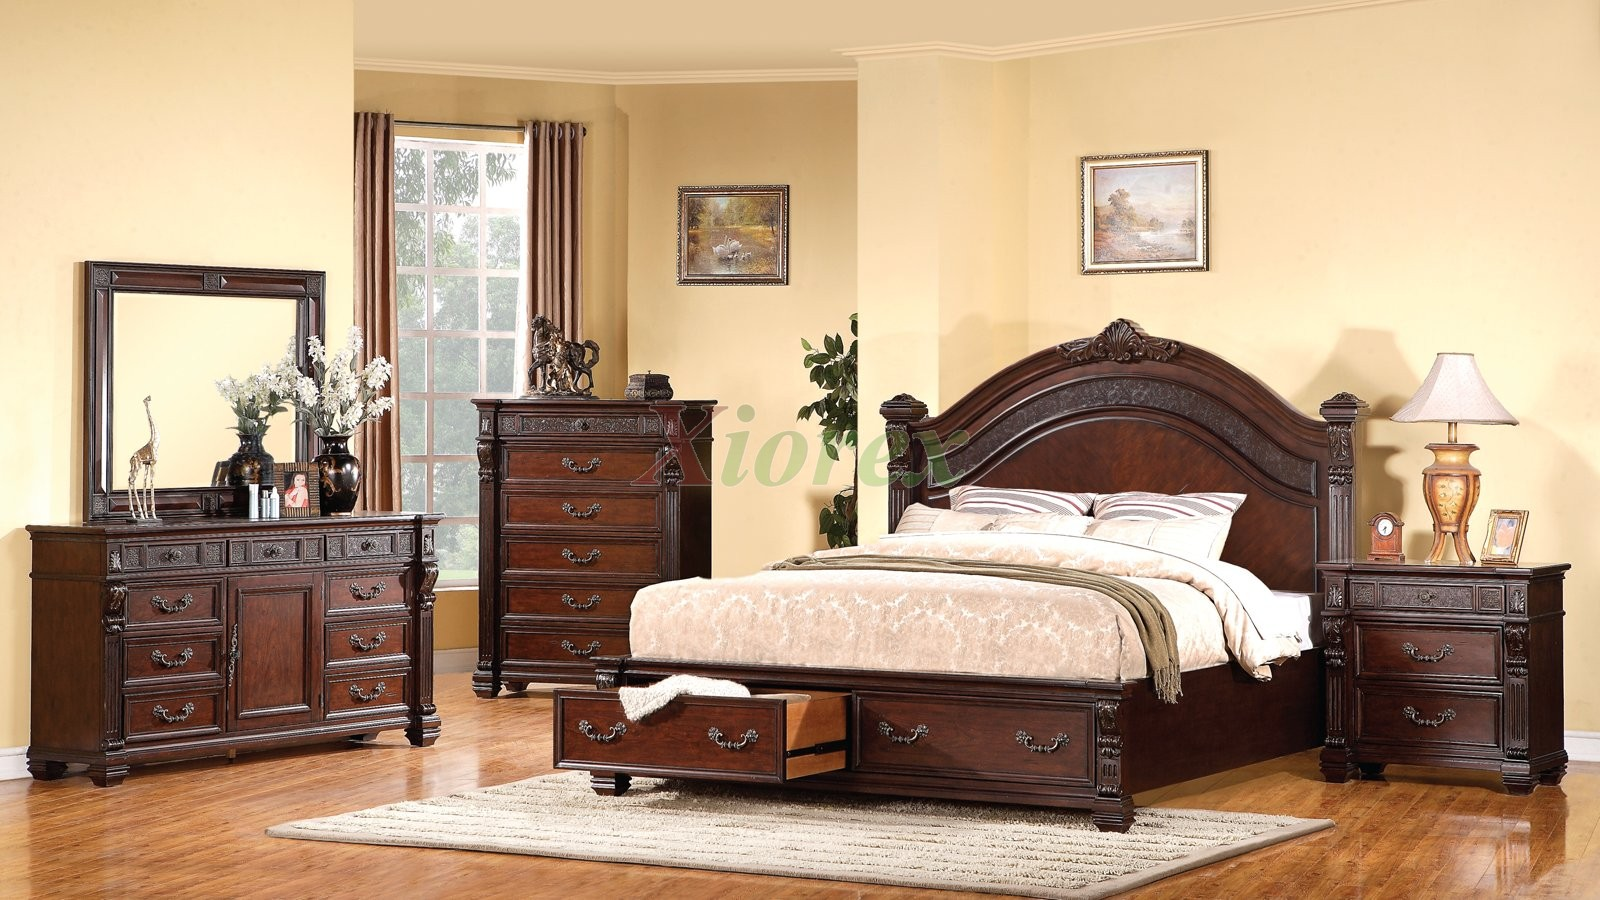 Bedroom sets product Bedrooms furniture